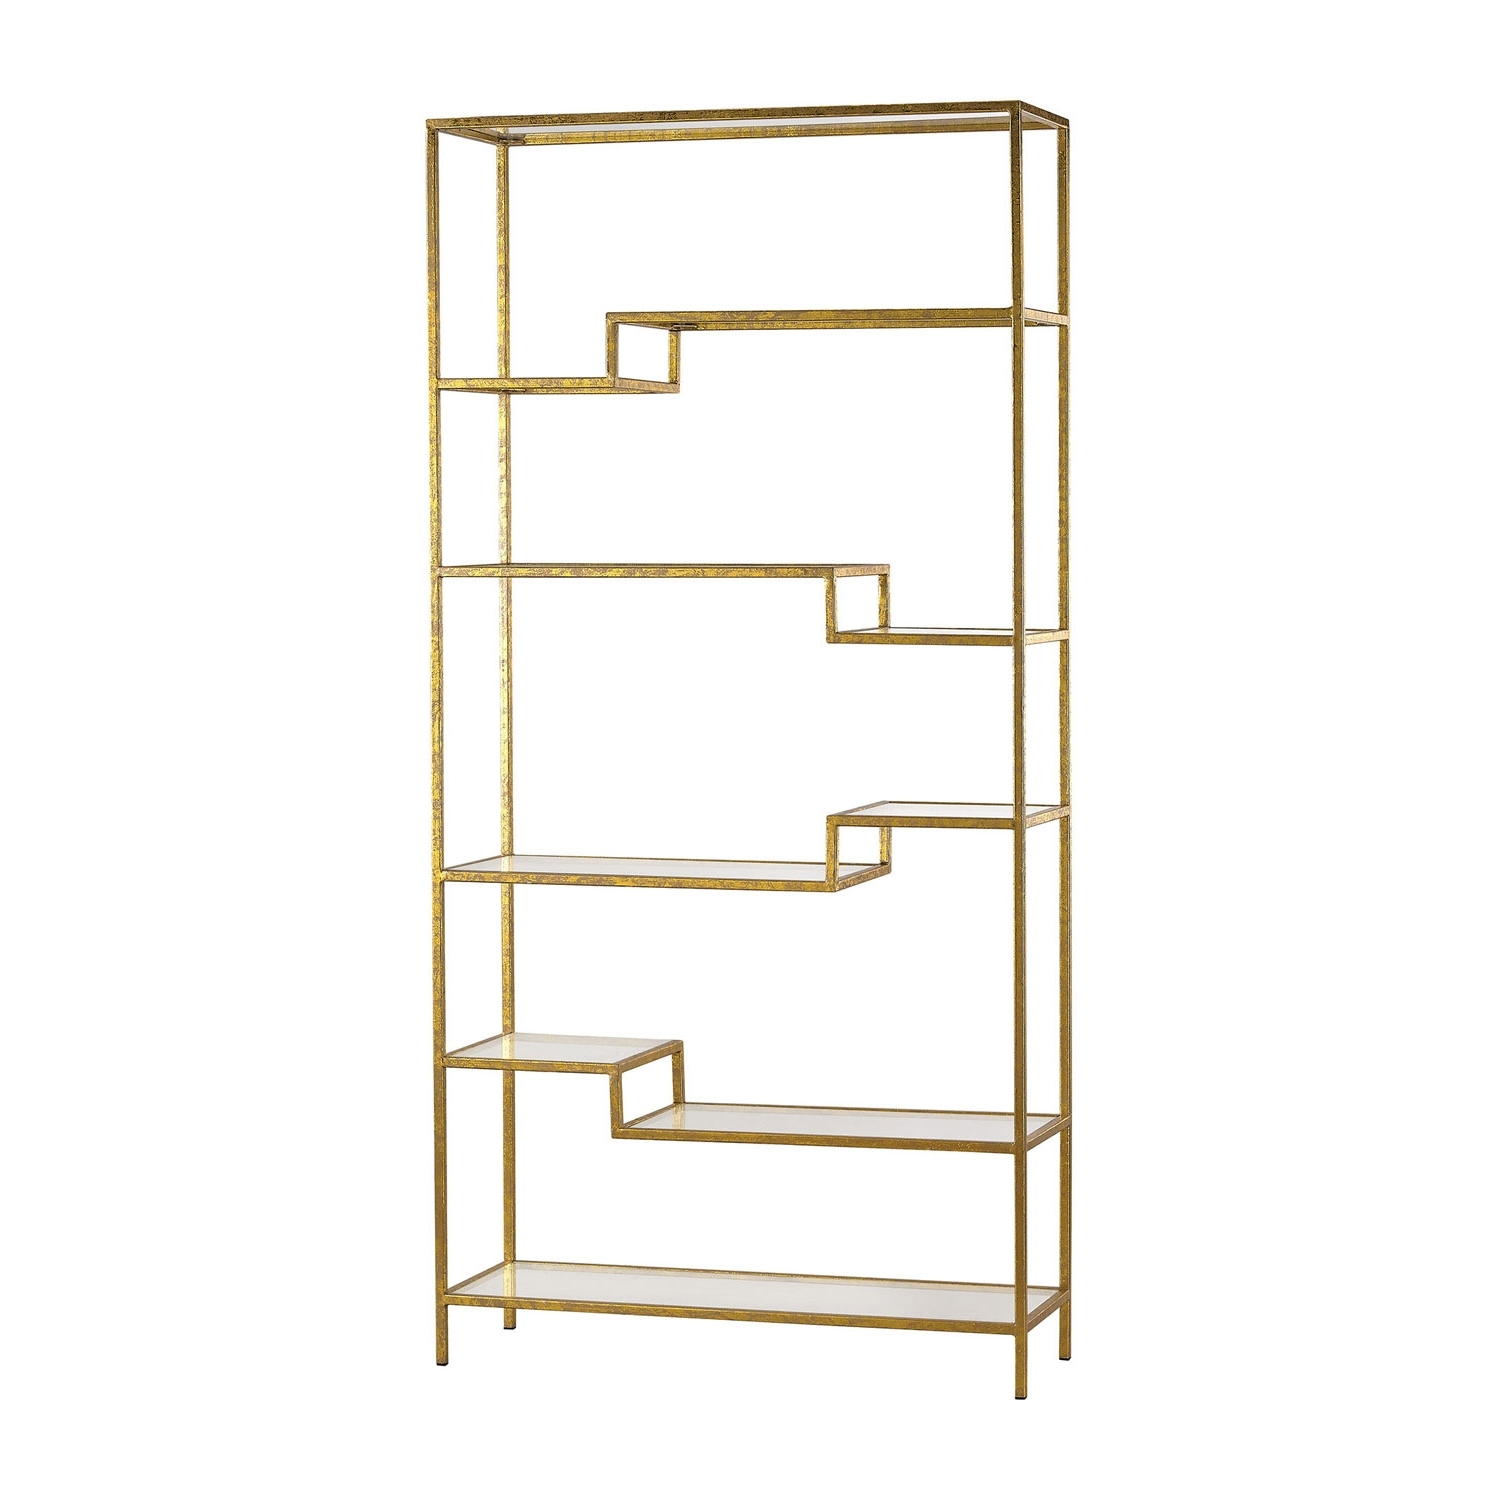 Famous Gold Mirror Shelf Sterling Industries Free Standing Shelves Intended For Gold Metal Bookcases (View 7 of 15)